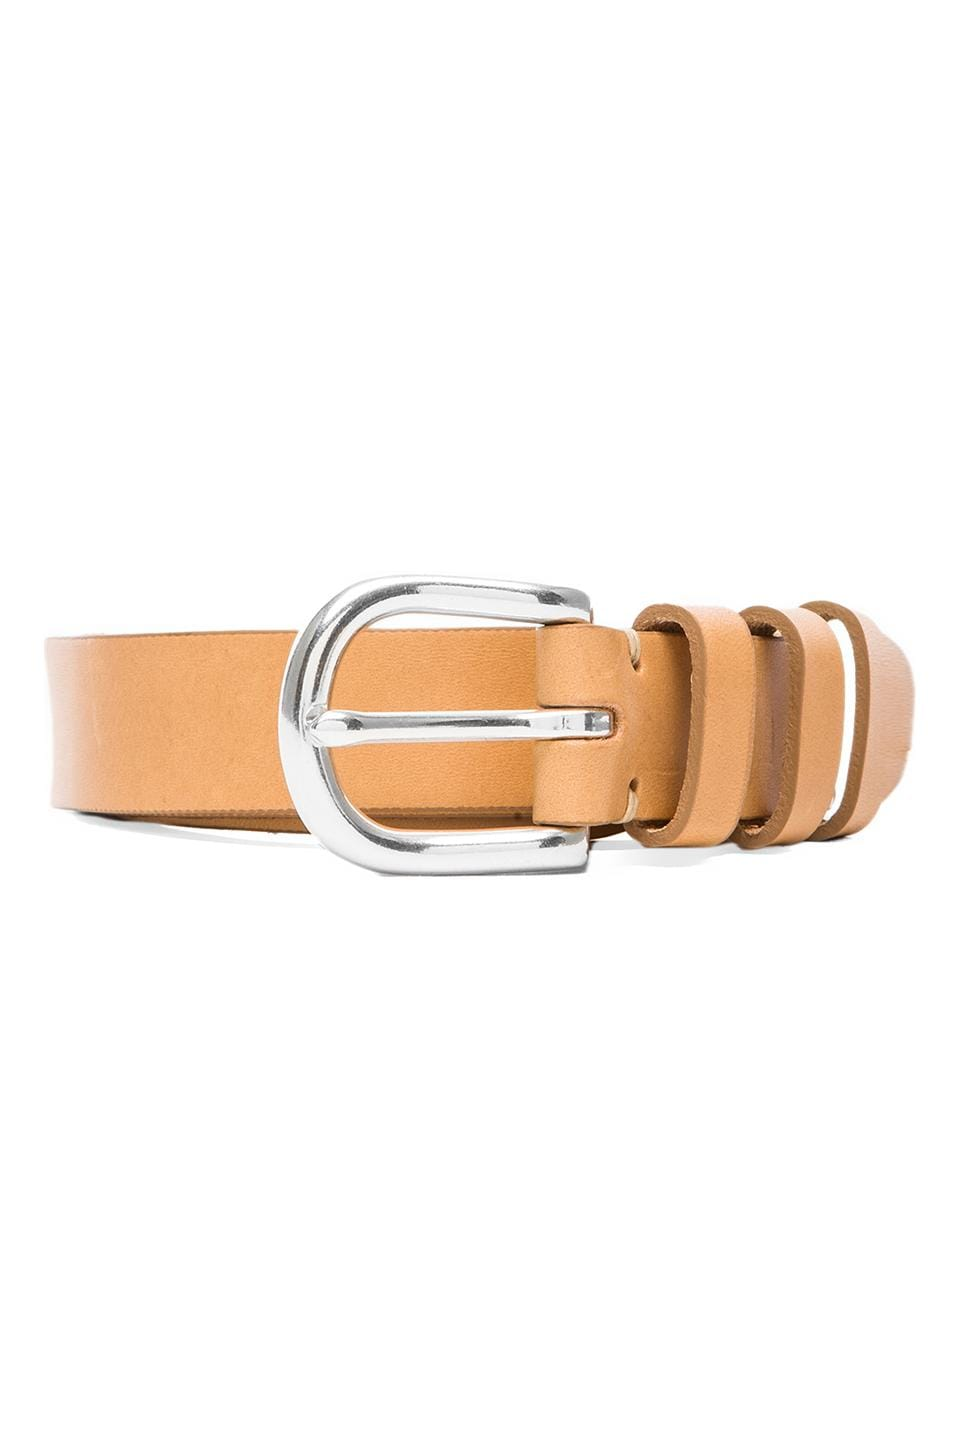 IRO Demany Belt in Natural